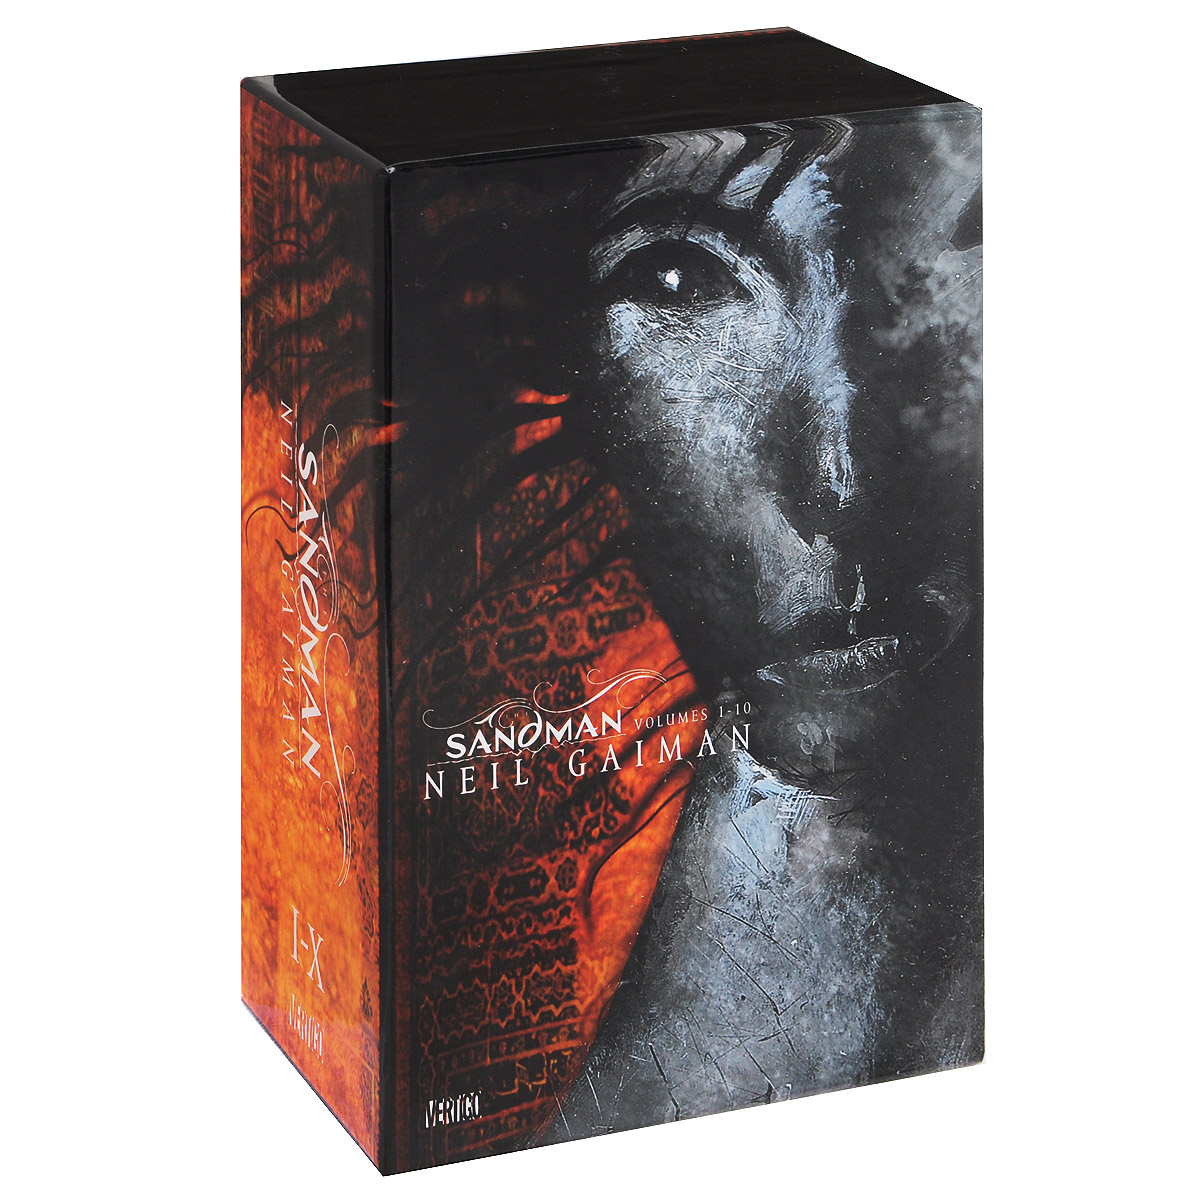 Sandman: Volume 1-10: Slipcase Set the absolute sandman volume 1